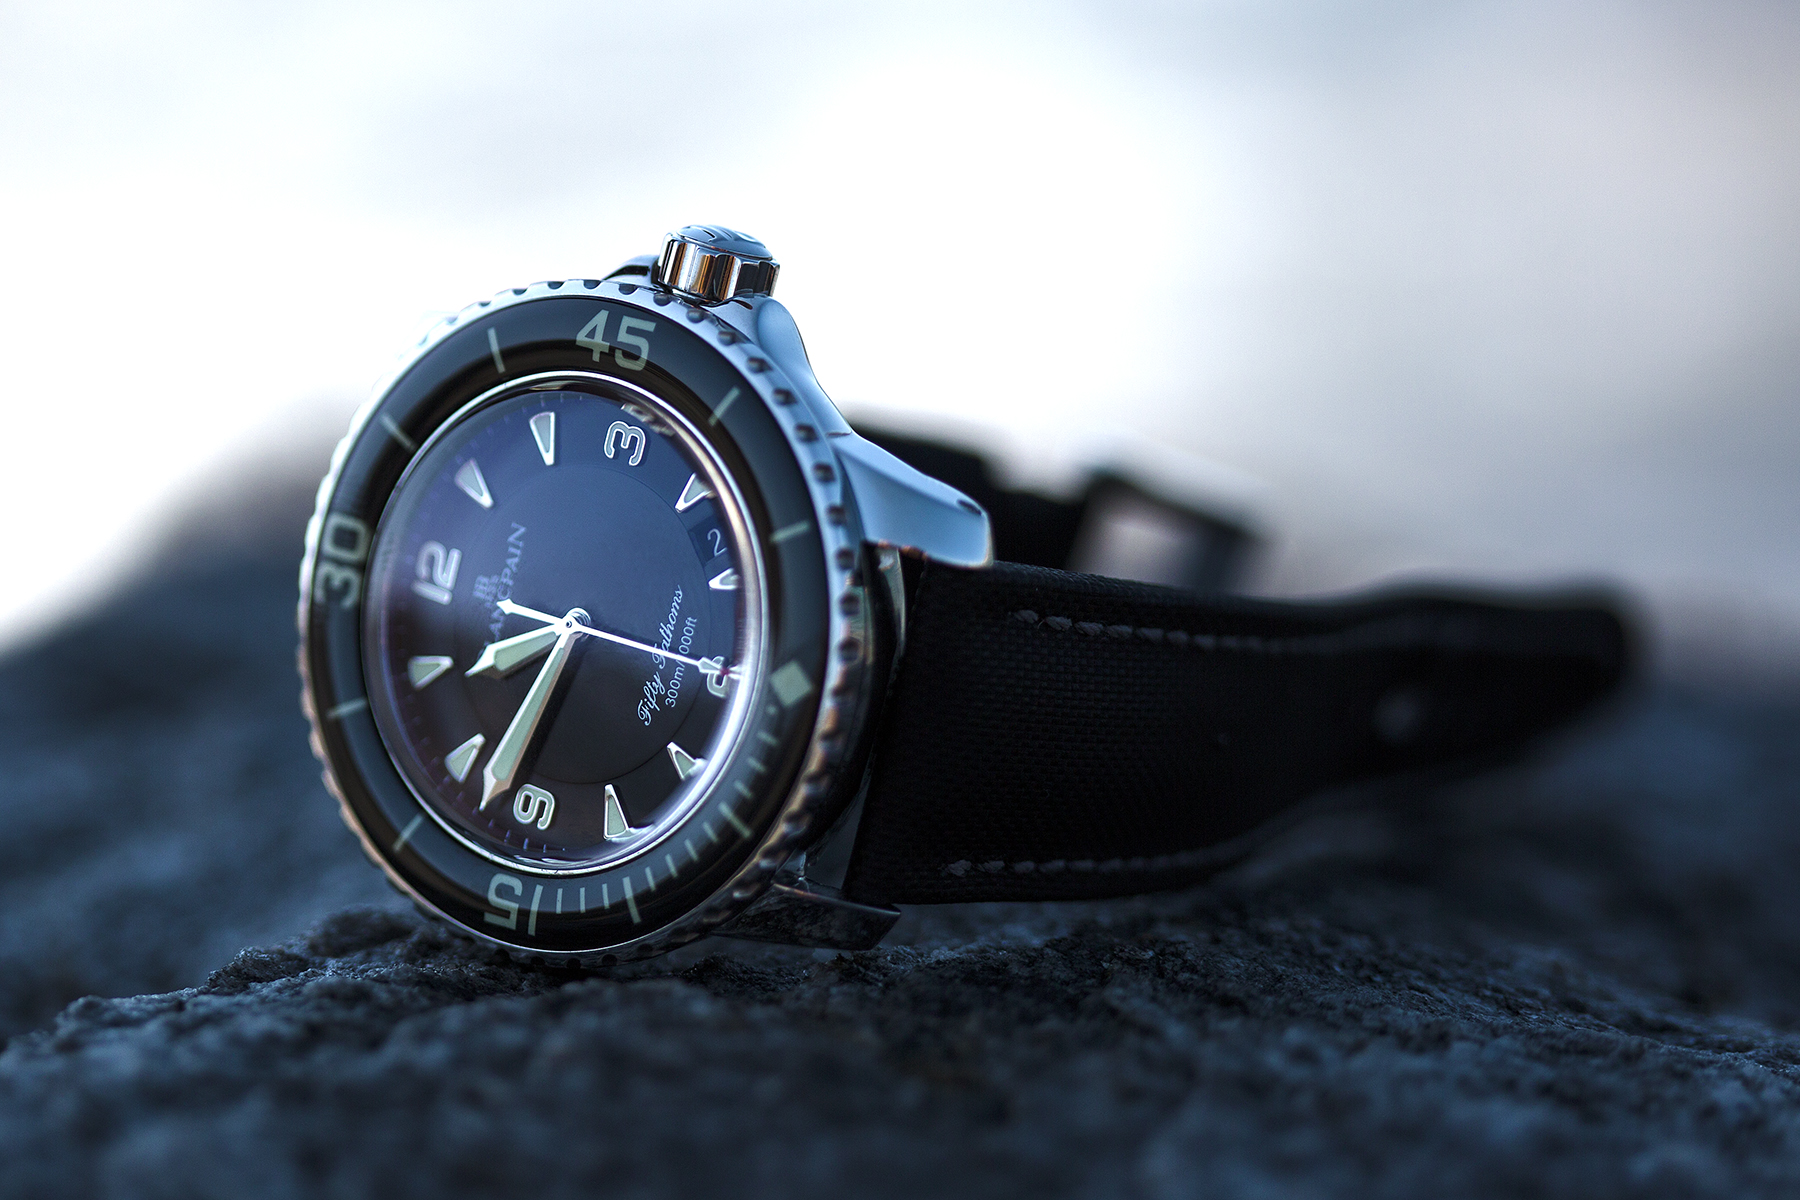 PDM 4034 Blancpain Fifty Fathoms